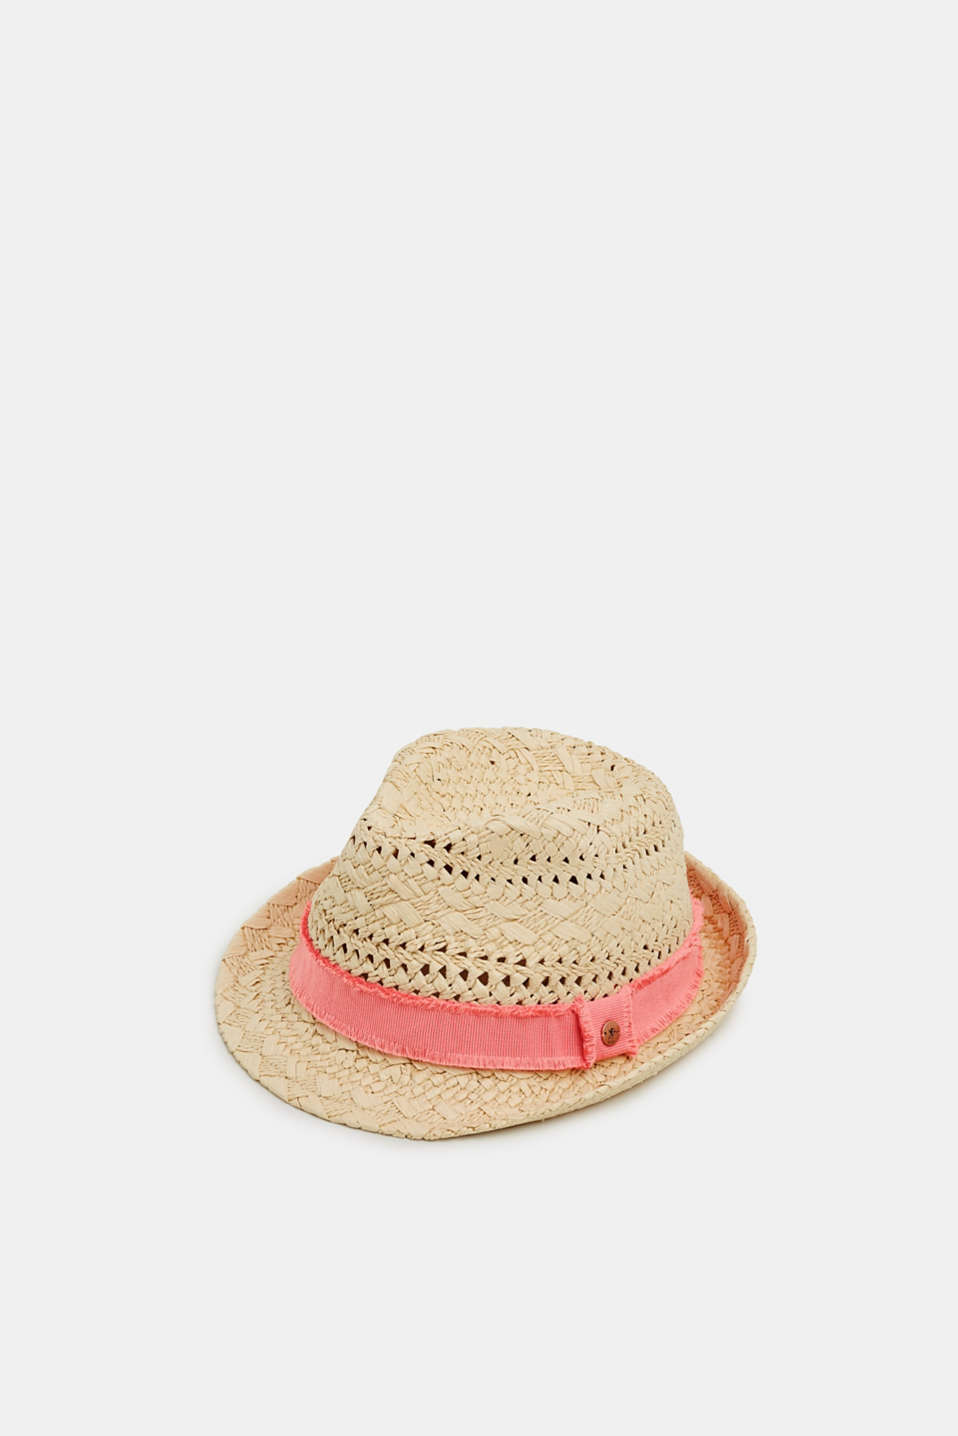 edc - Braided trilby hat made of straw